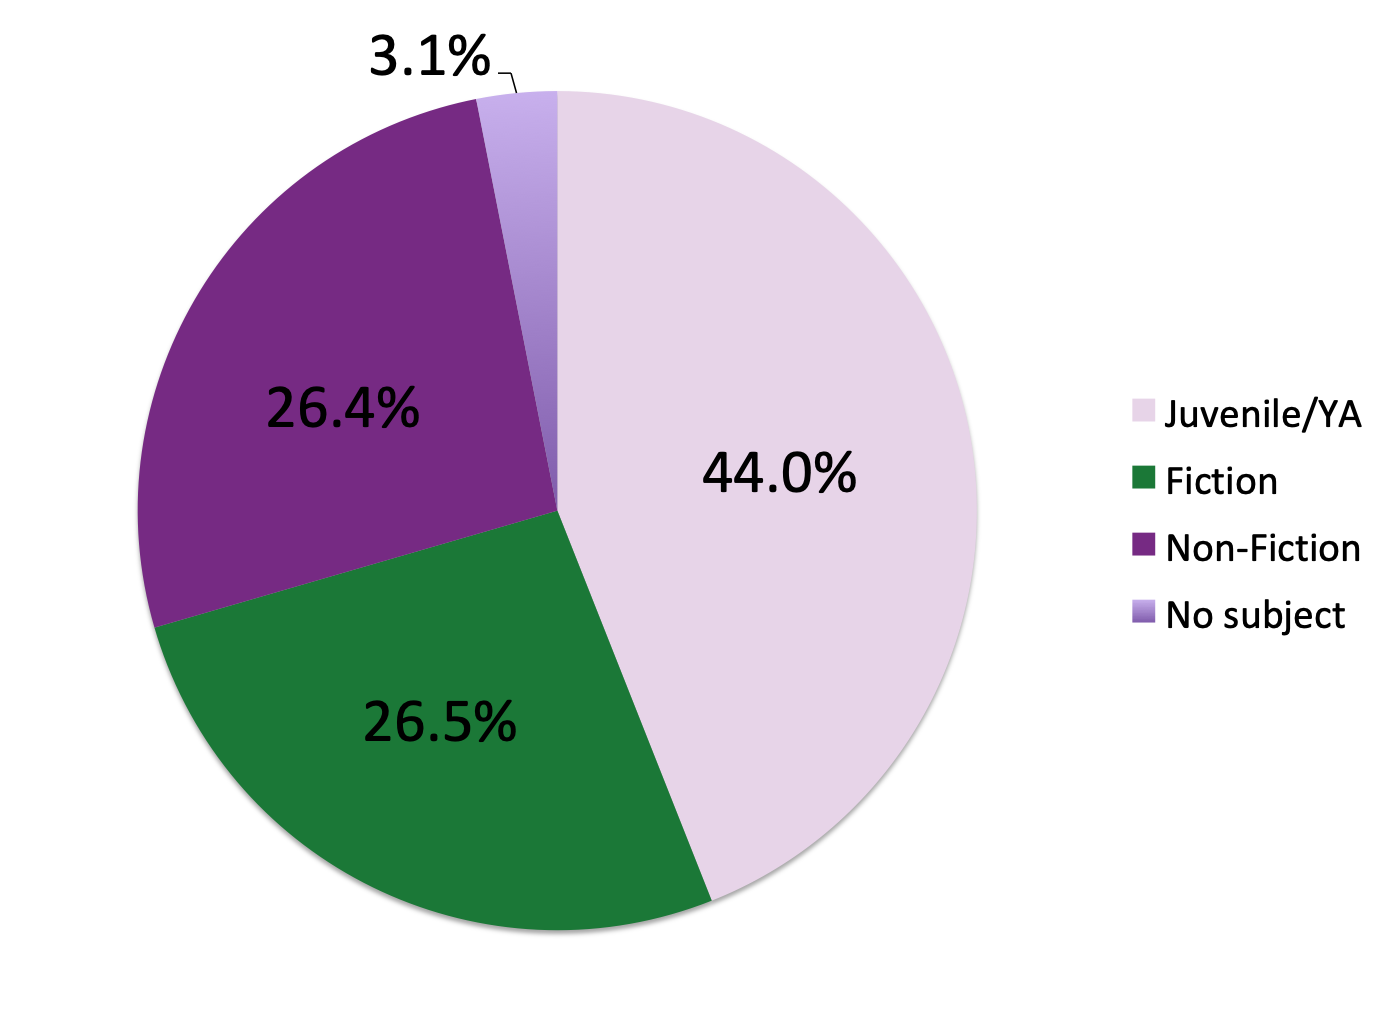 Pie chart showing category breakdown of loans.